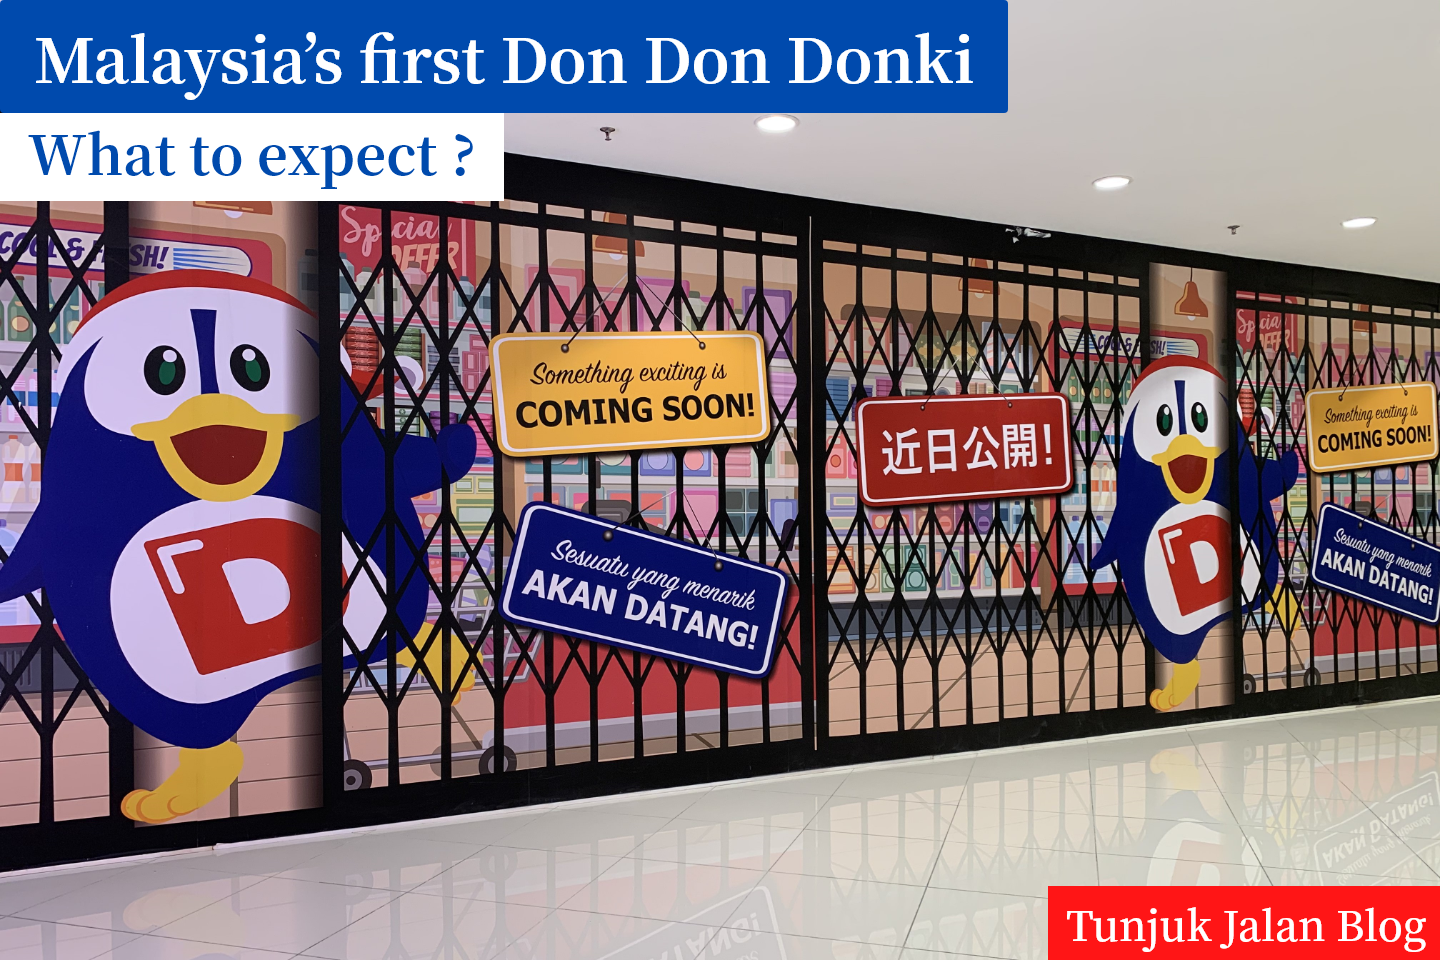 Malaysia's first Don Don Donki at Lot 10 Kuala Lumpur – What to expect?